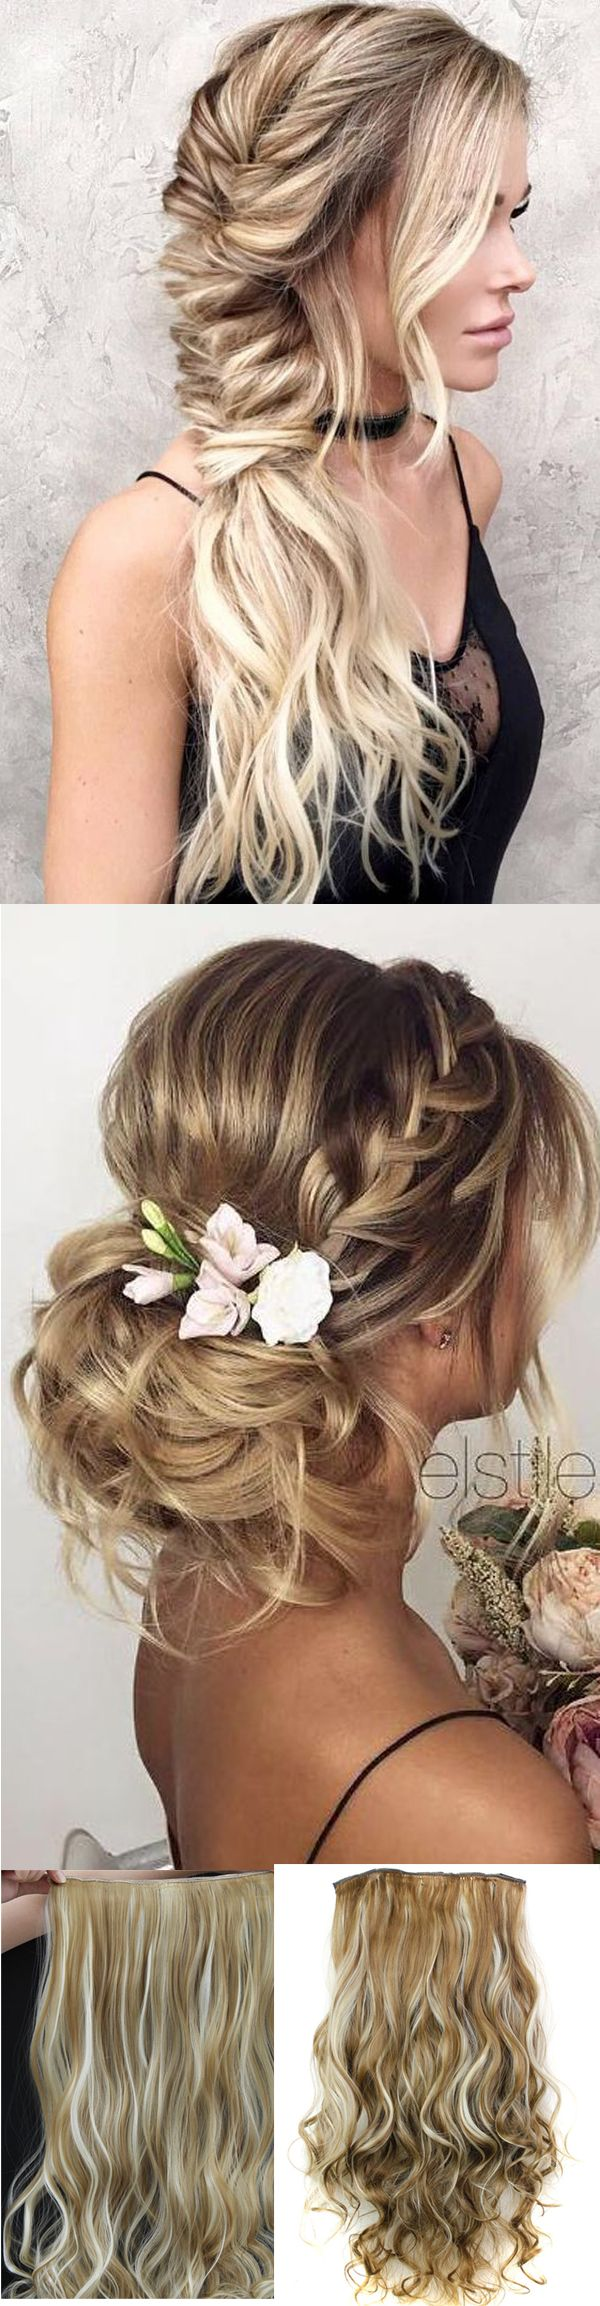 459 Best Hair Extensions Images On Pinterest